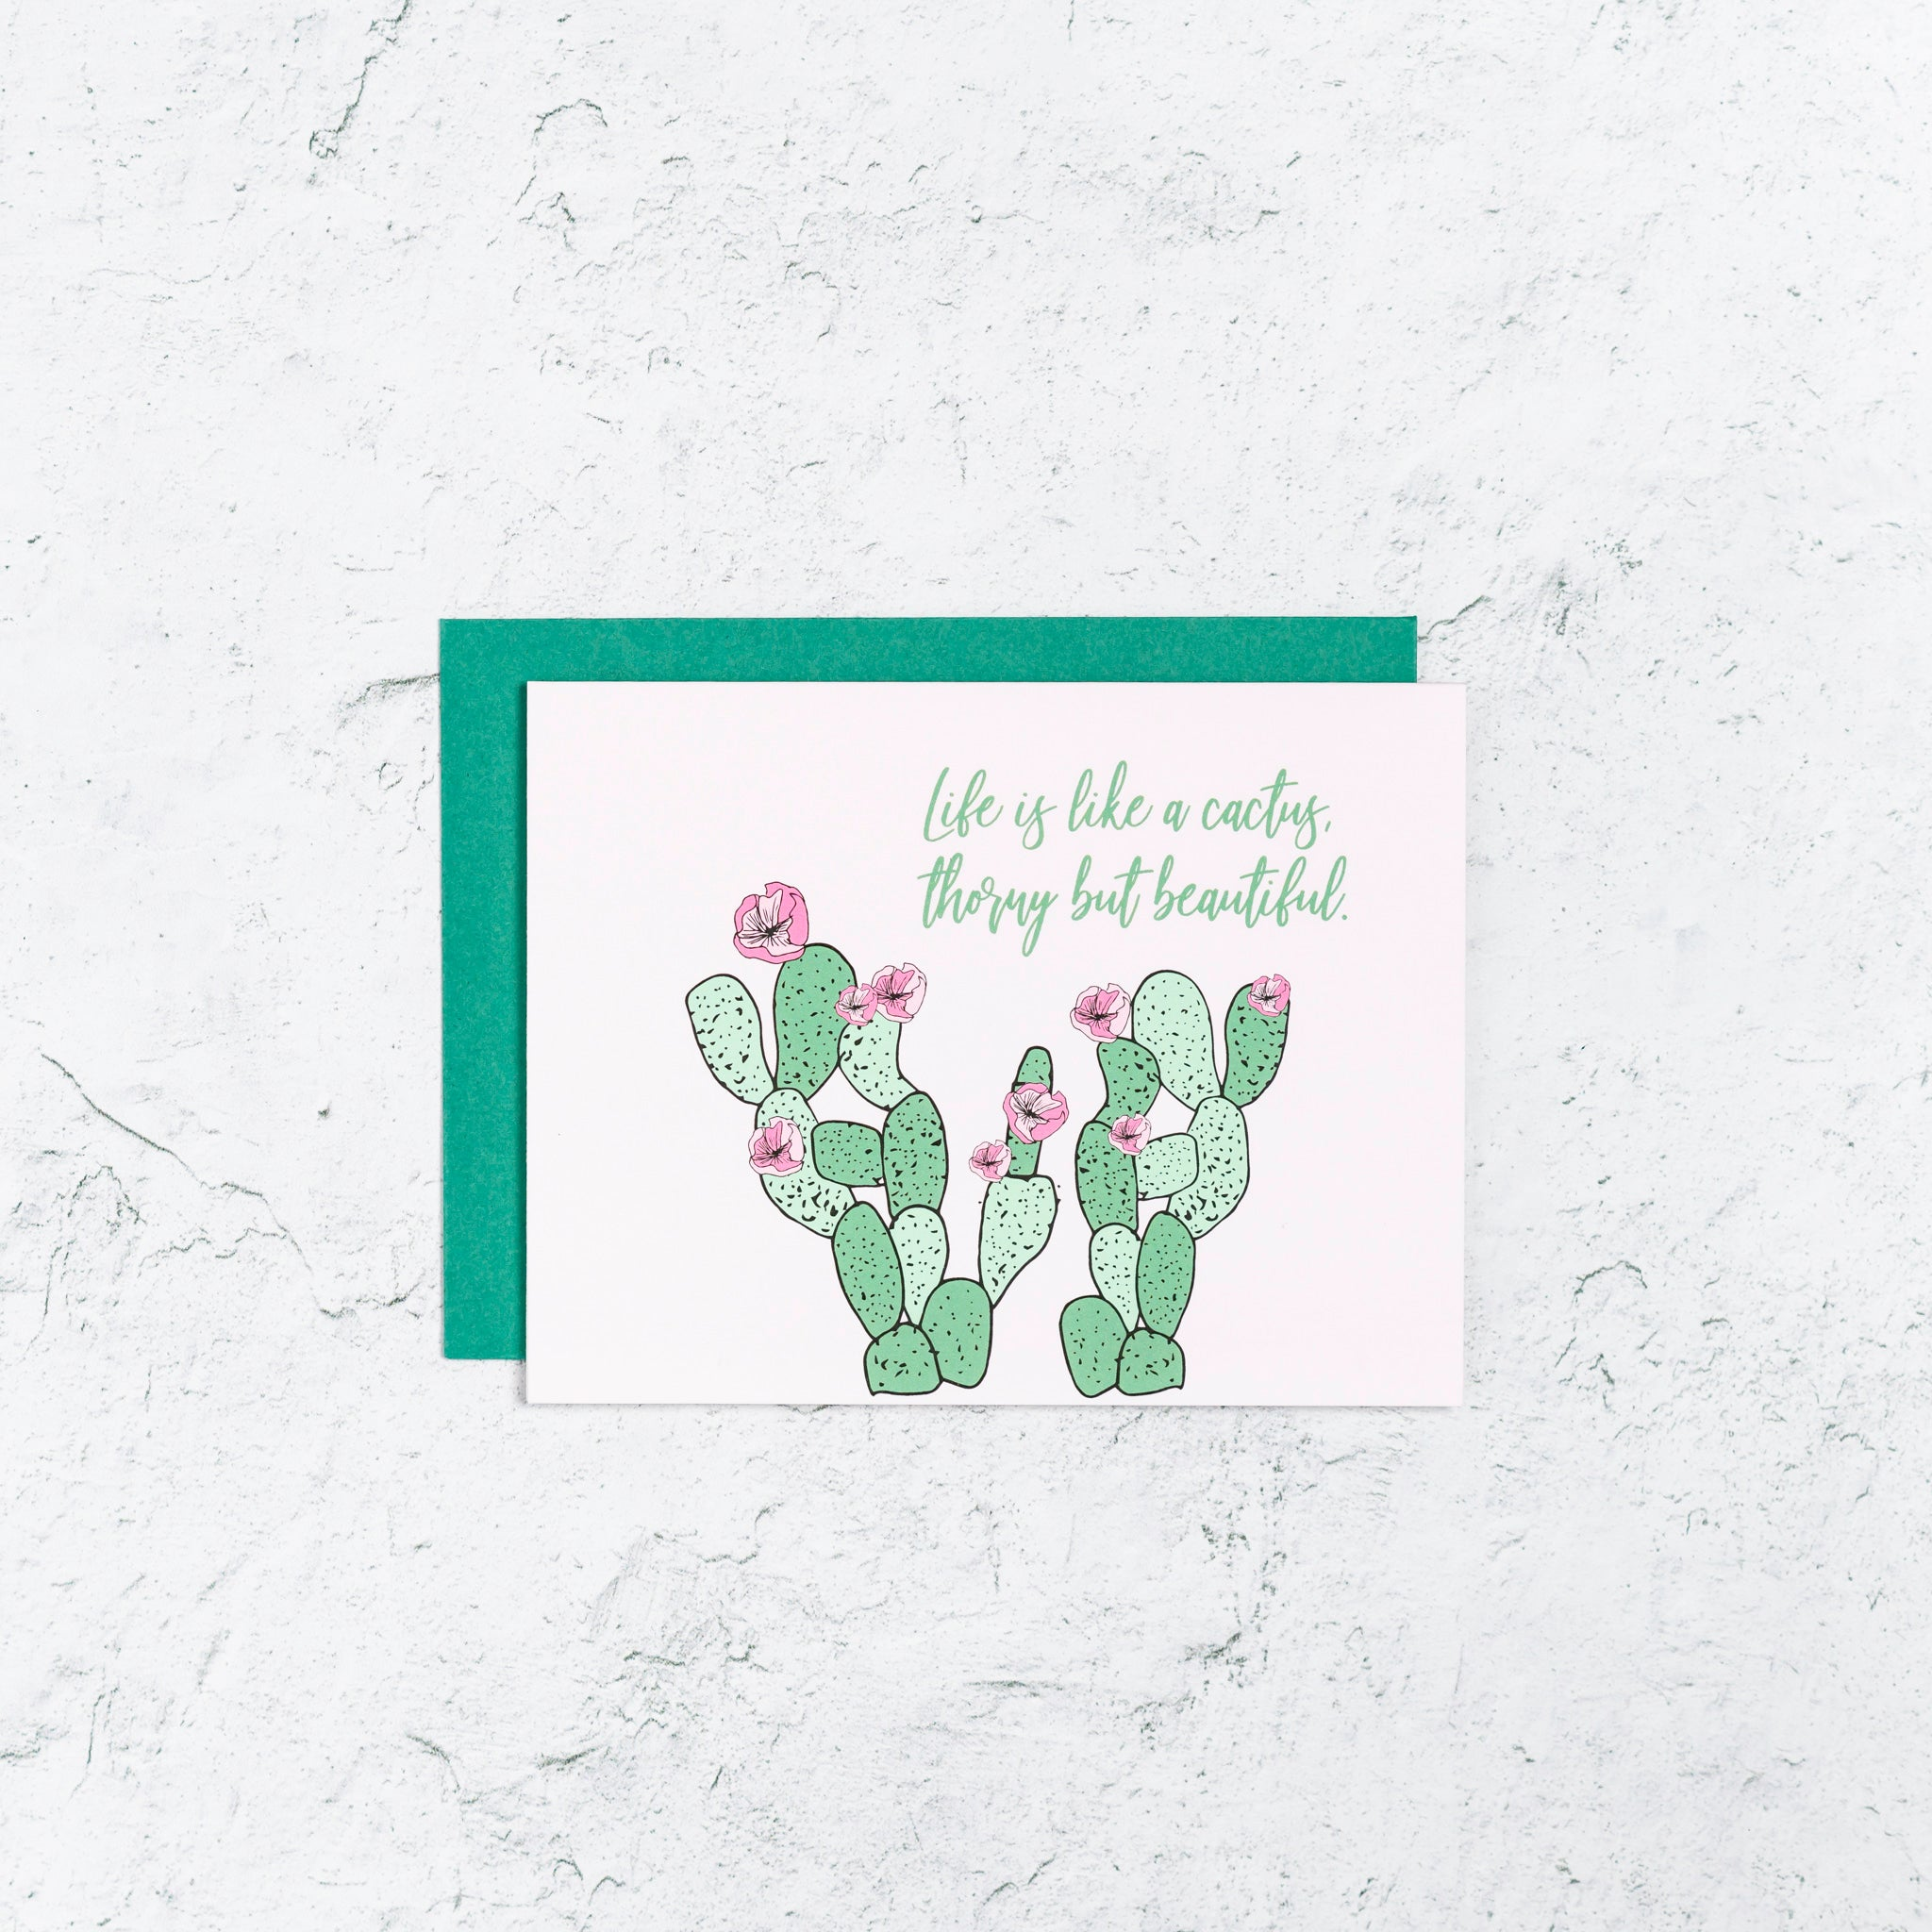 Life is like a cactus thorny but beautiful card